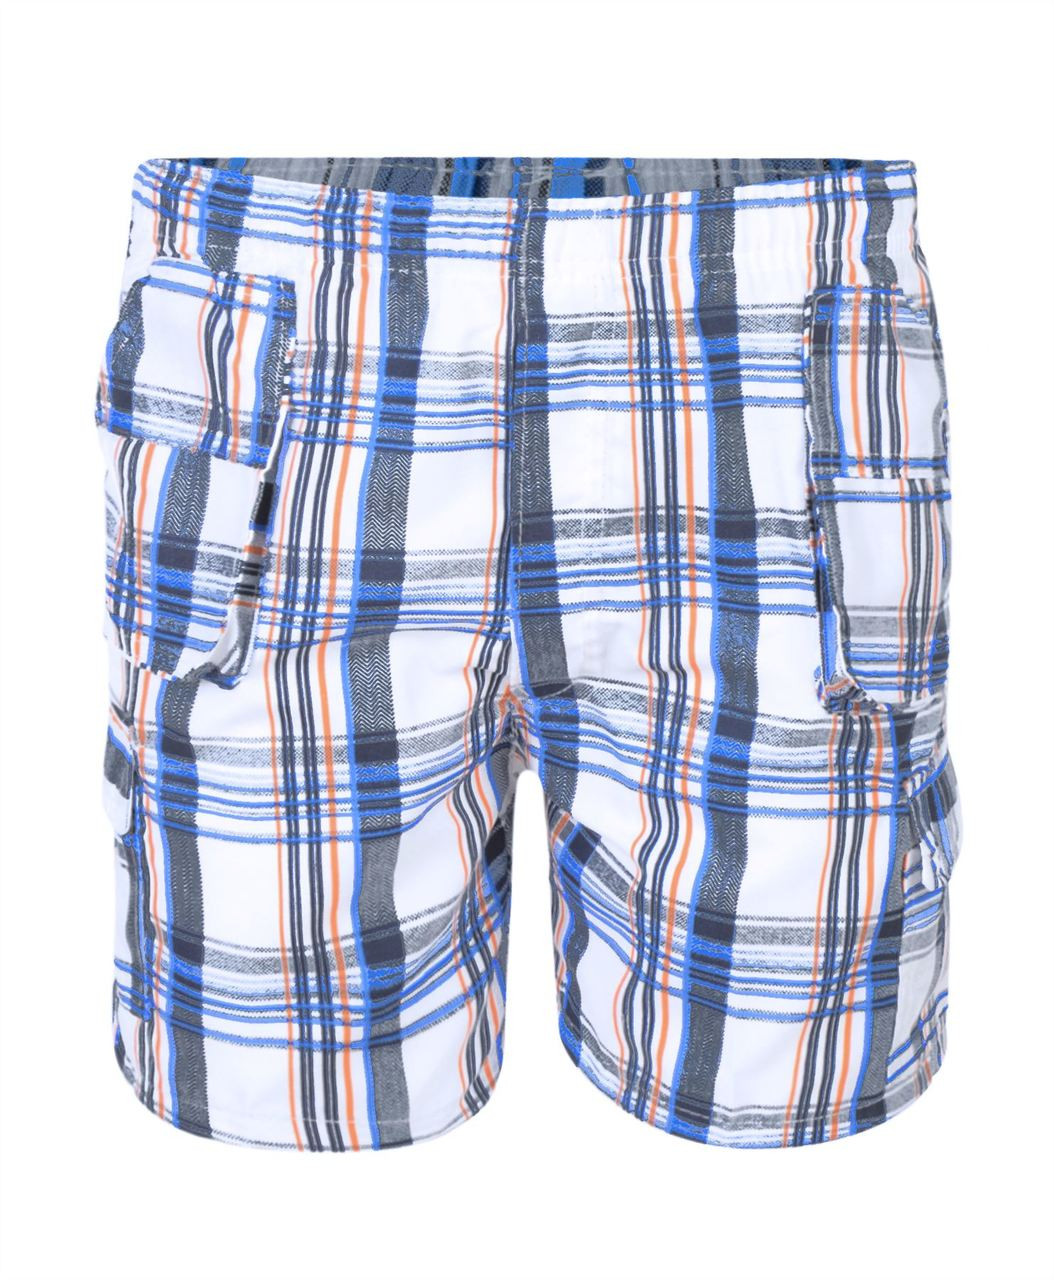 Kids Cargo Bottoms Elasticated Checked Print Summer Shorts Boys Pants 3-14 Years